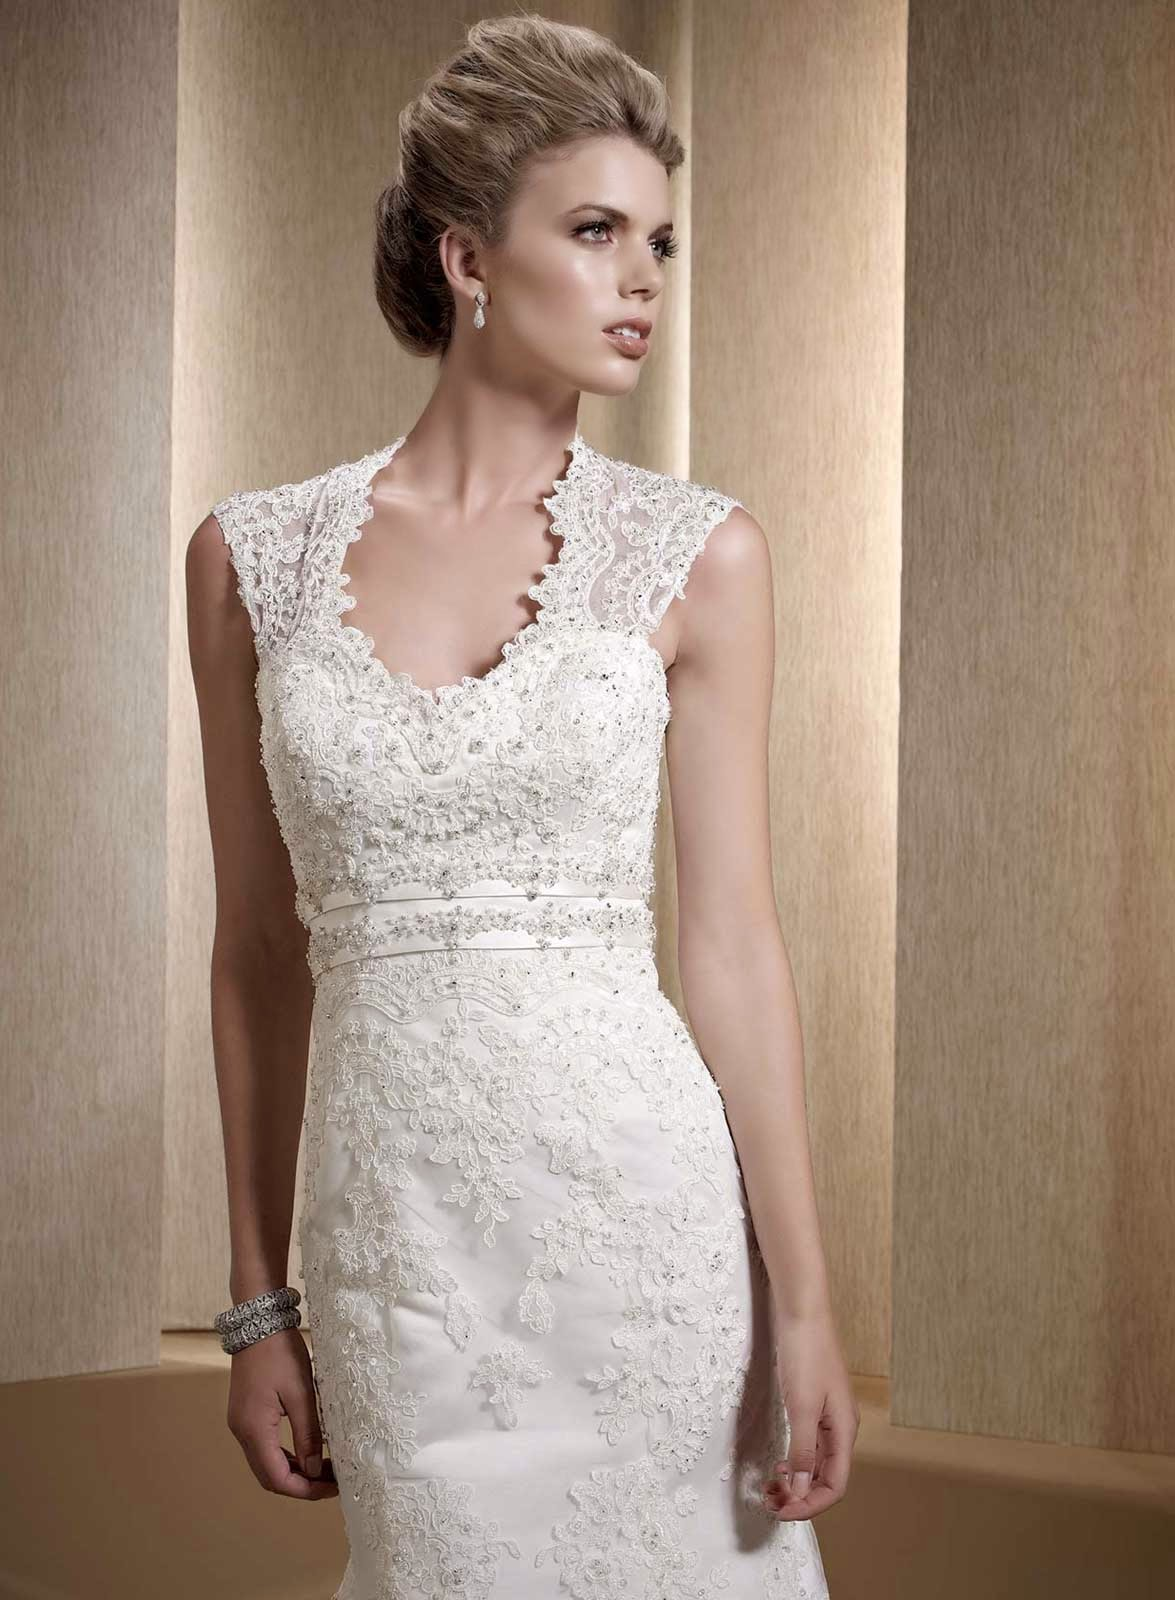 White Ivory Lace Wedding Dresses Design Ideas Photos HD